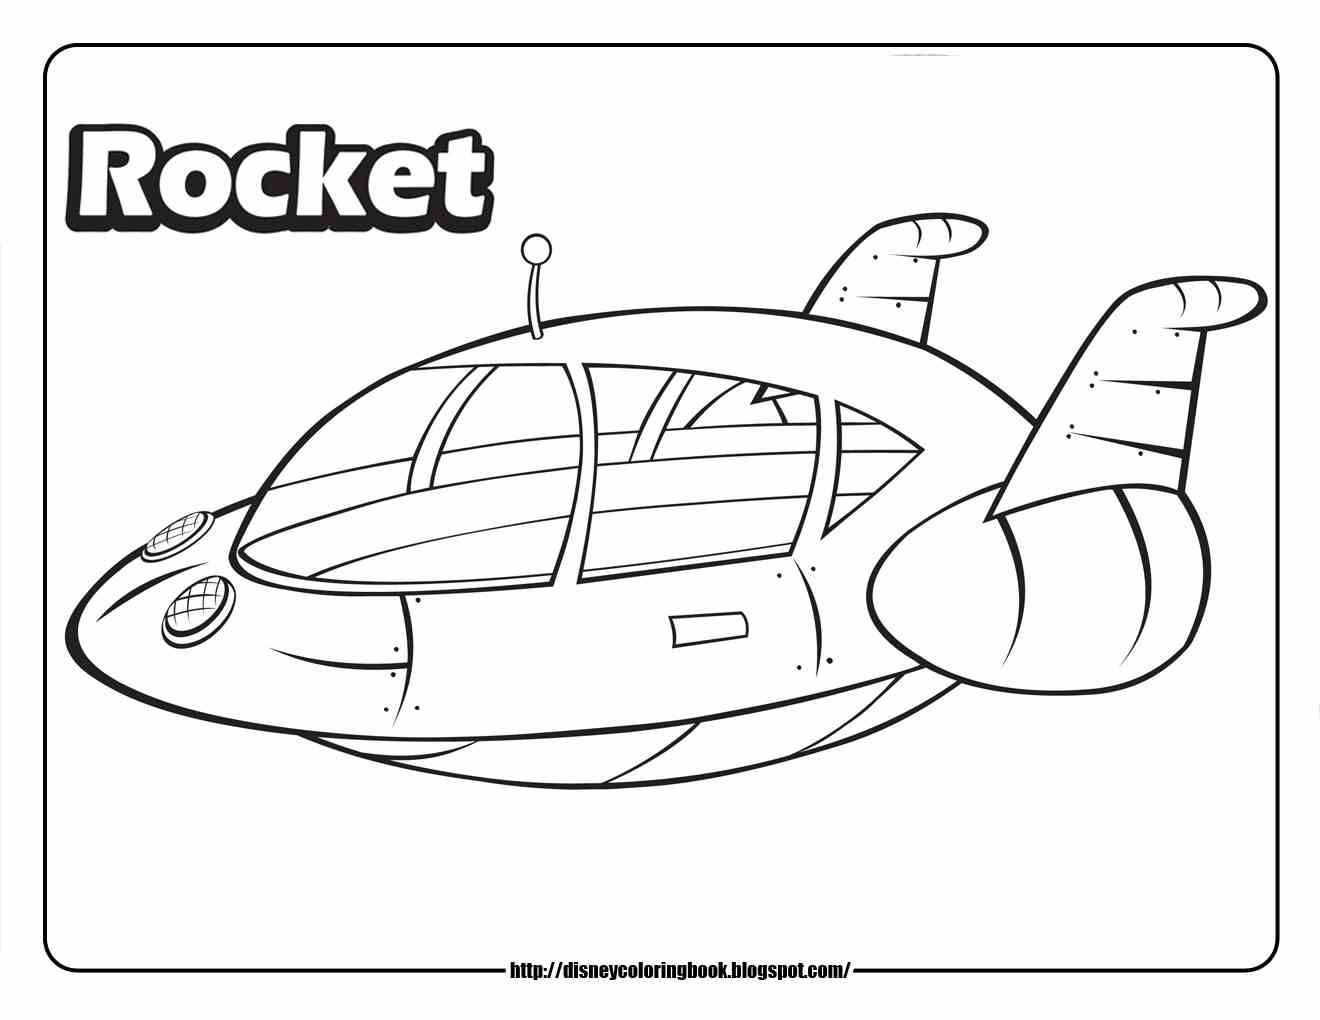 Little Einsteins Rocketship Image From Http Colorine Net Wp